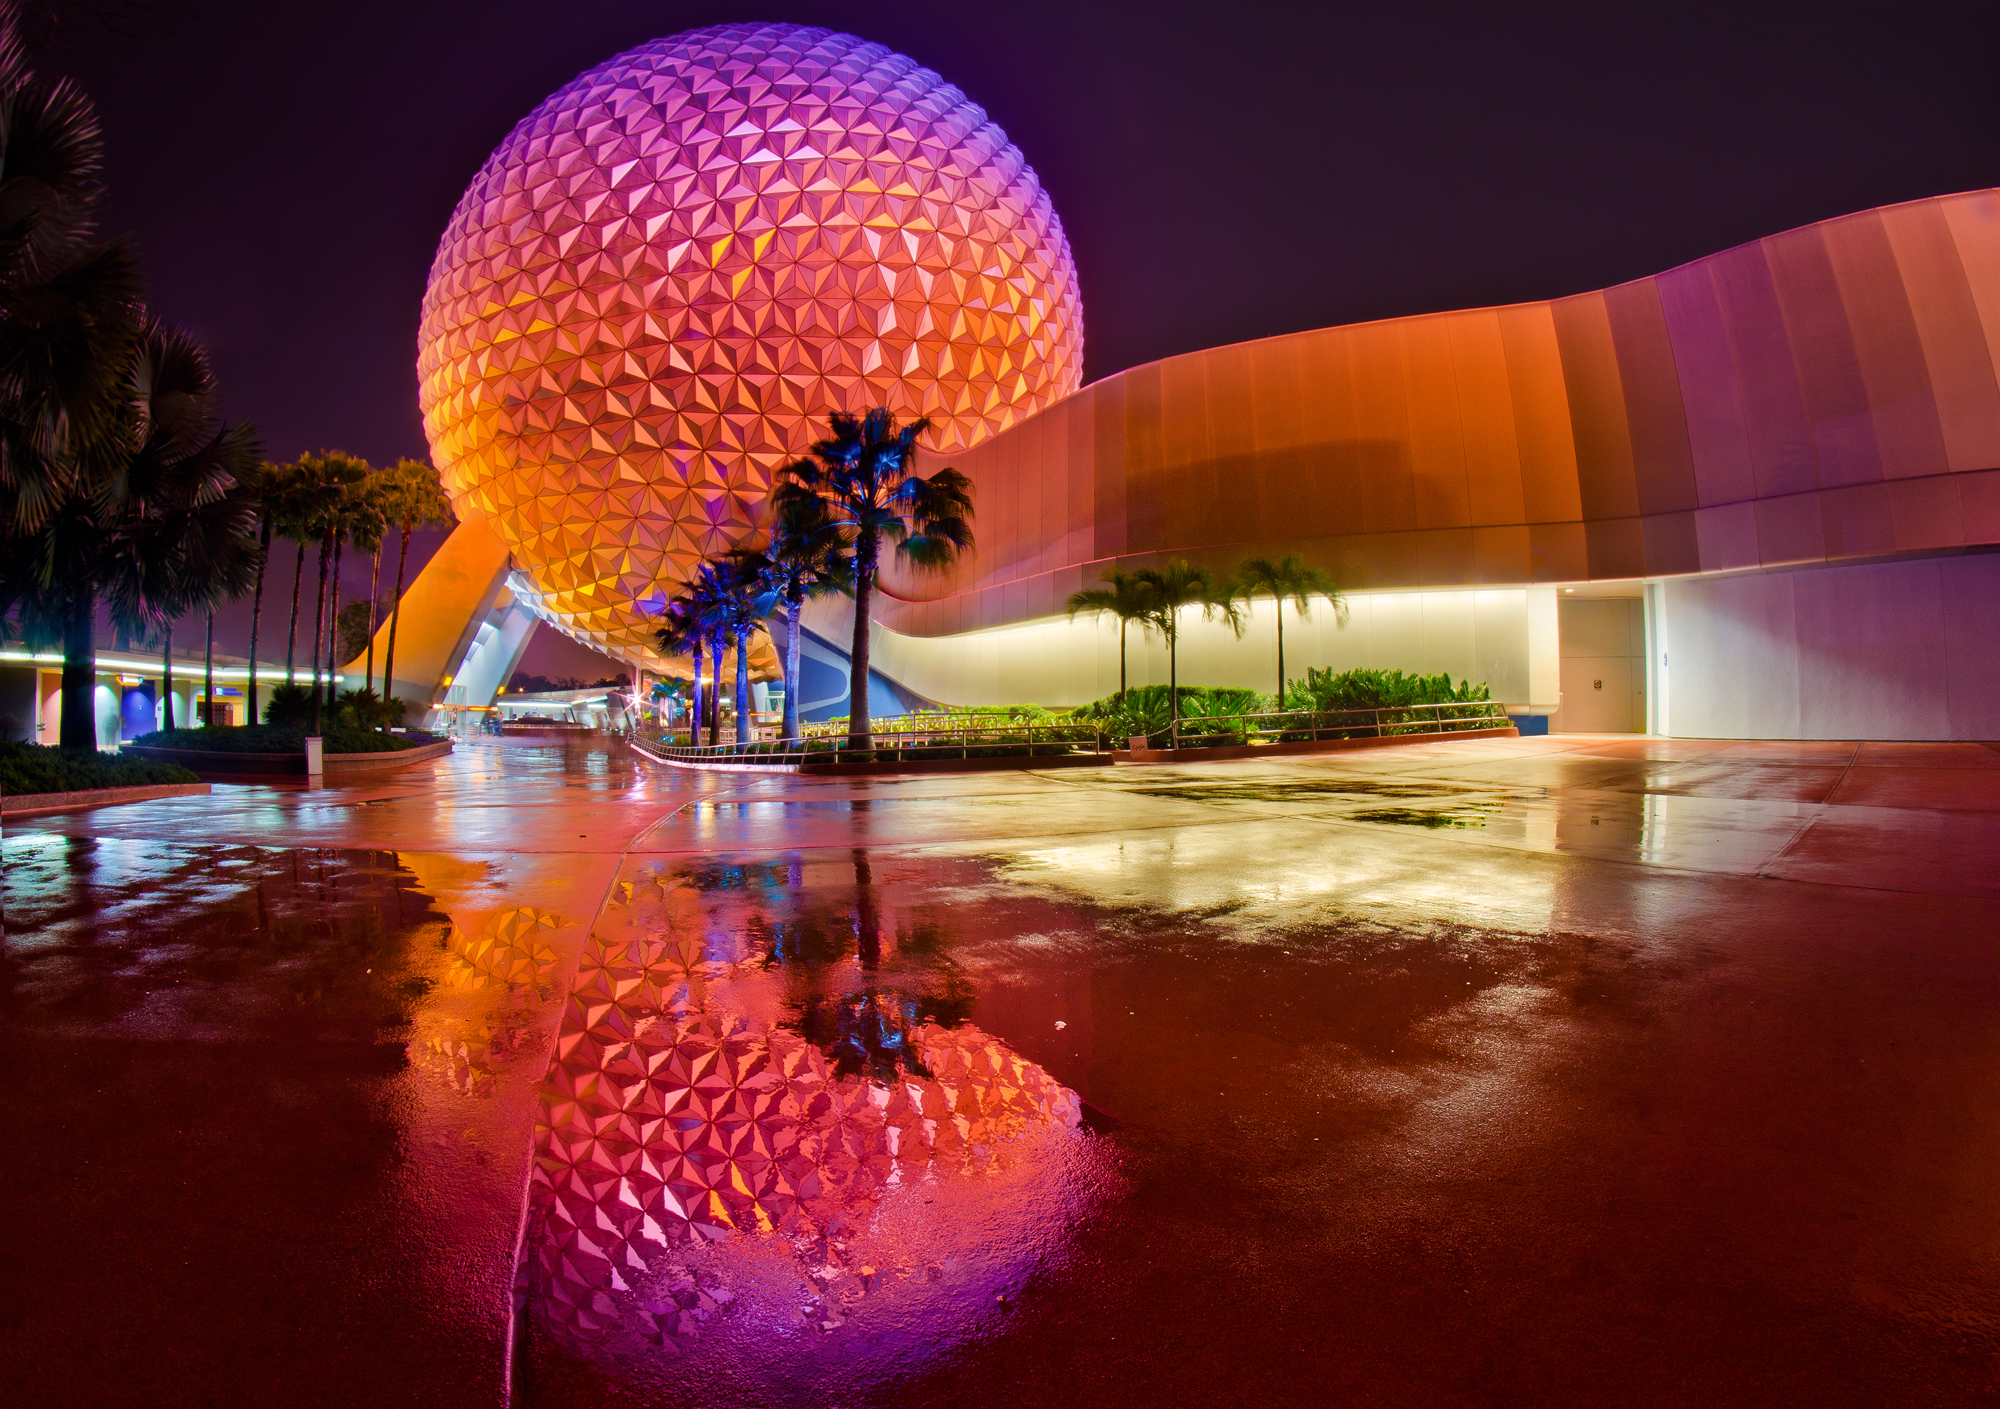 I've already shared several of my photos from this rainy night at Epcot, including this photo of Spaceship Earth that several others called my best photo of ...